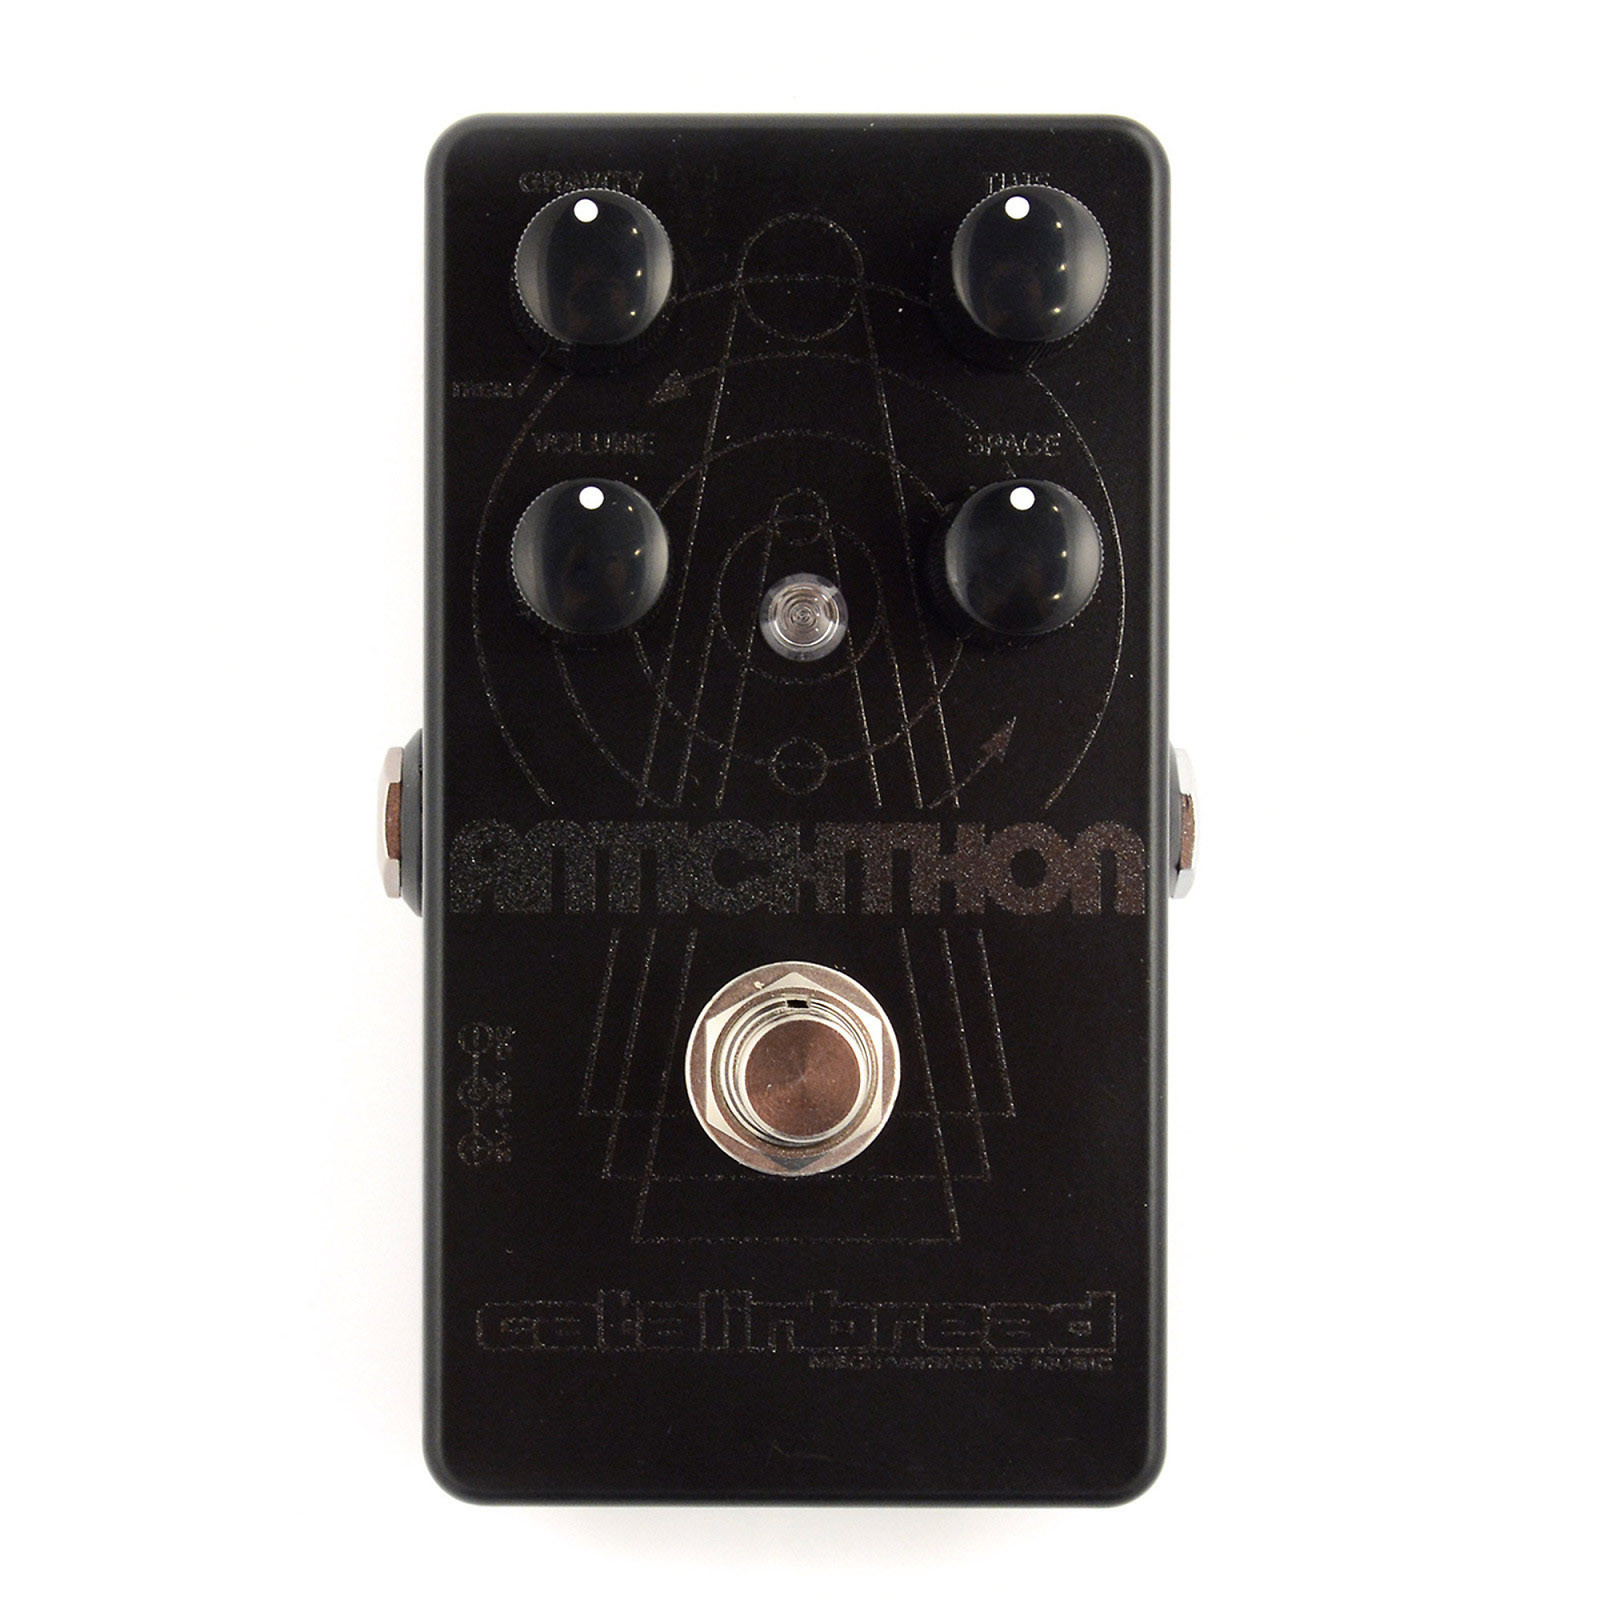 Catalinbread Antichthon Tone-Generating Fuzz Tremolo Pedal by Retail Solutions - DROPSHIP